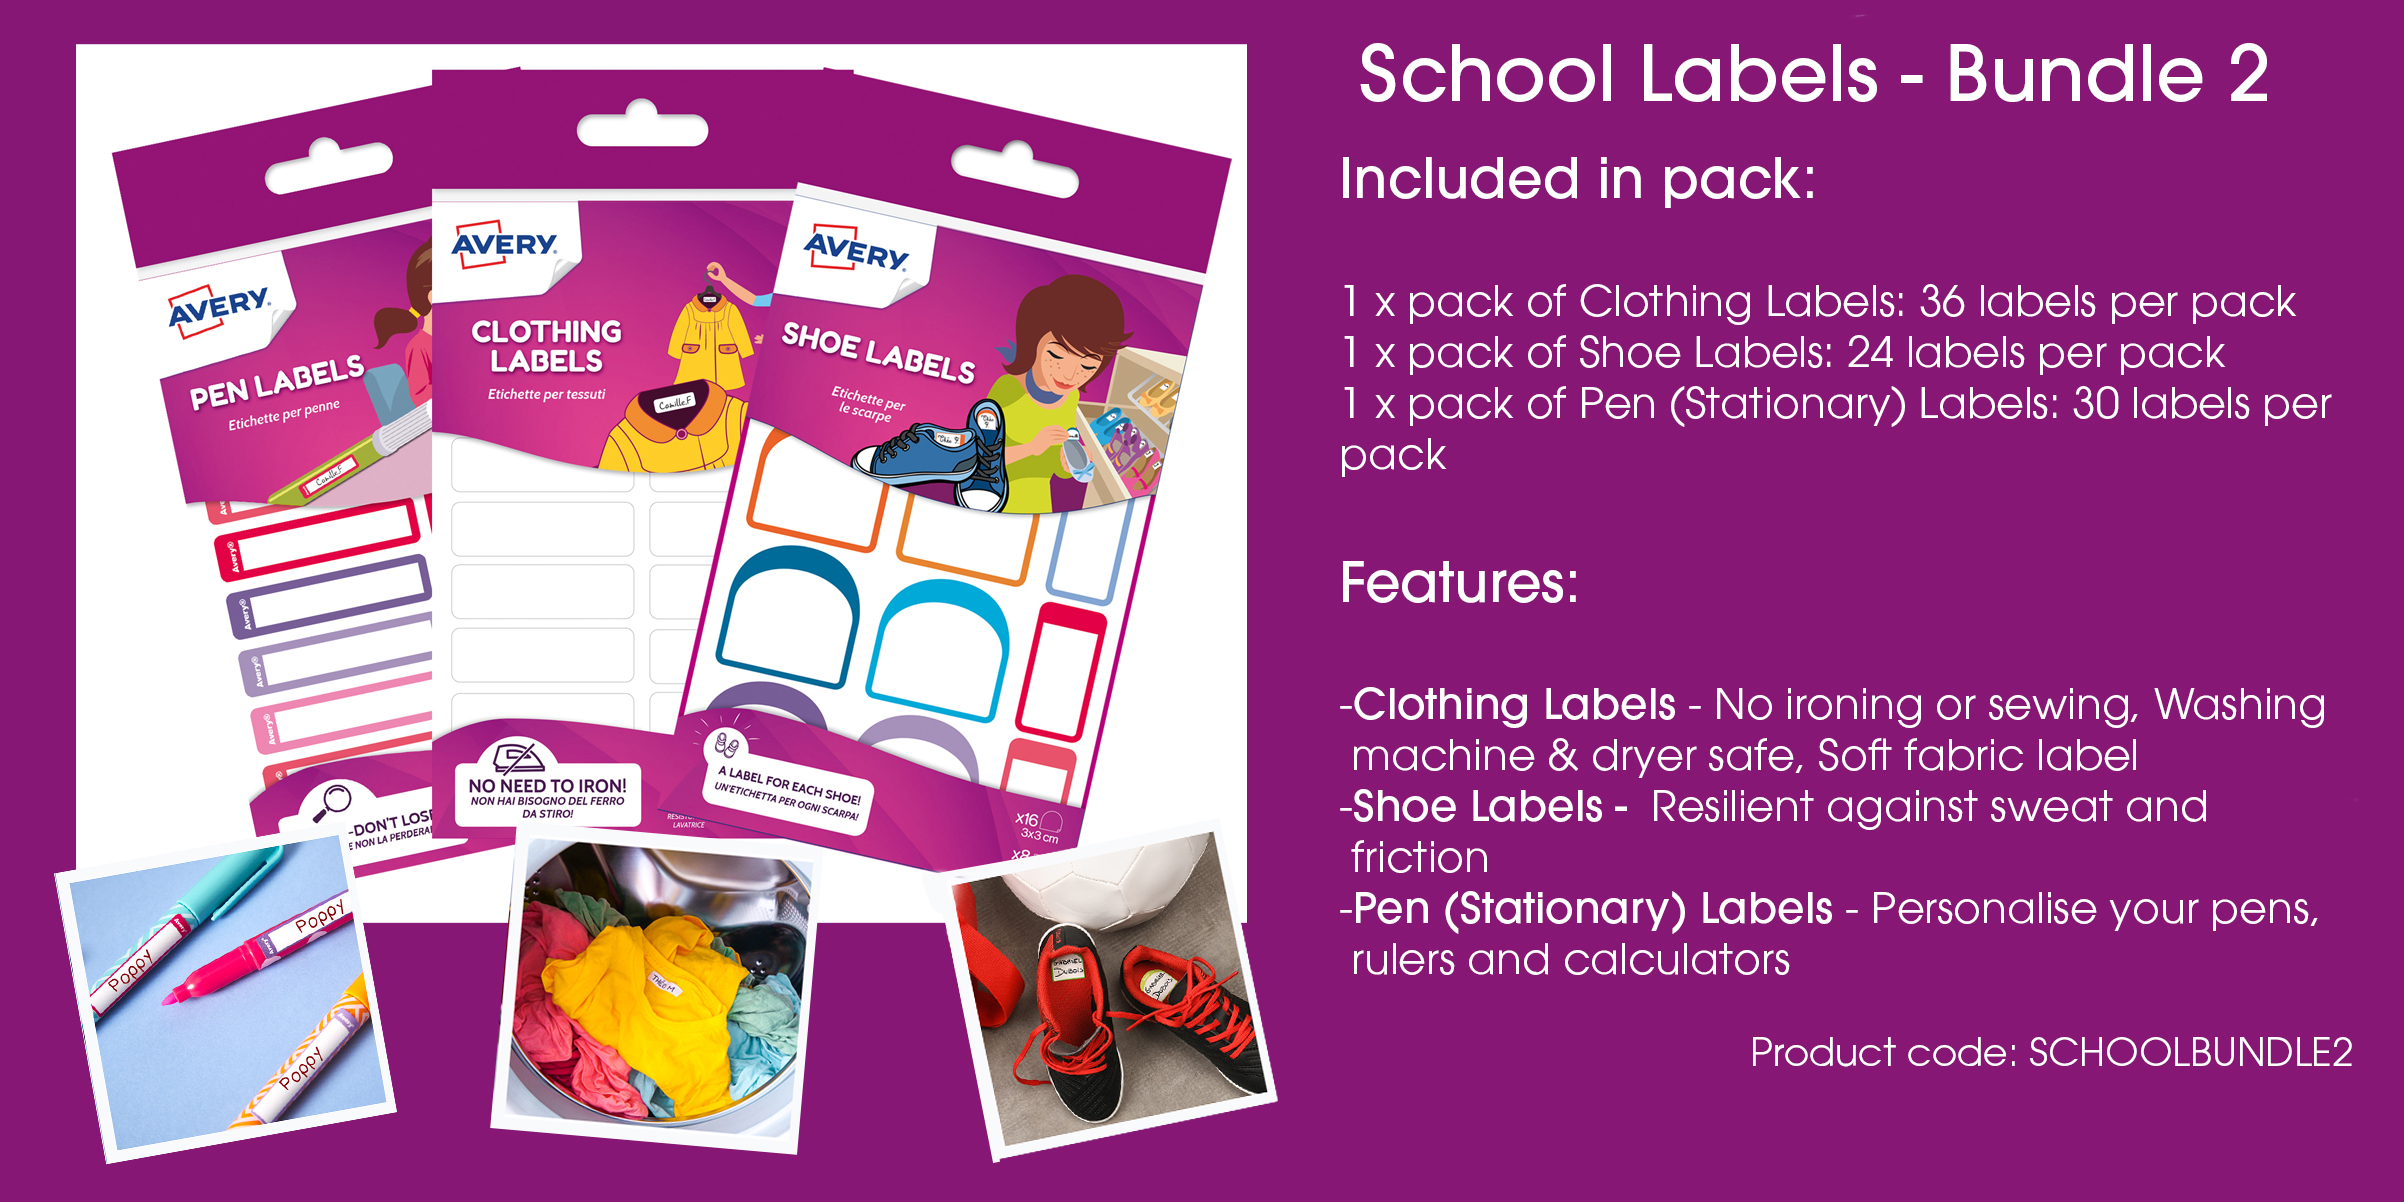 Avery School Labels - Value Packs